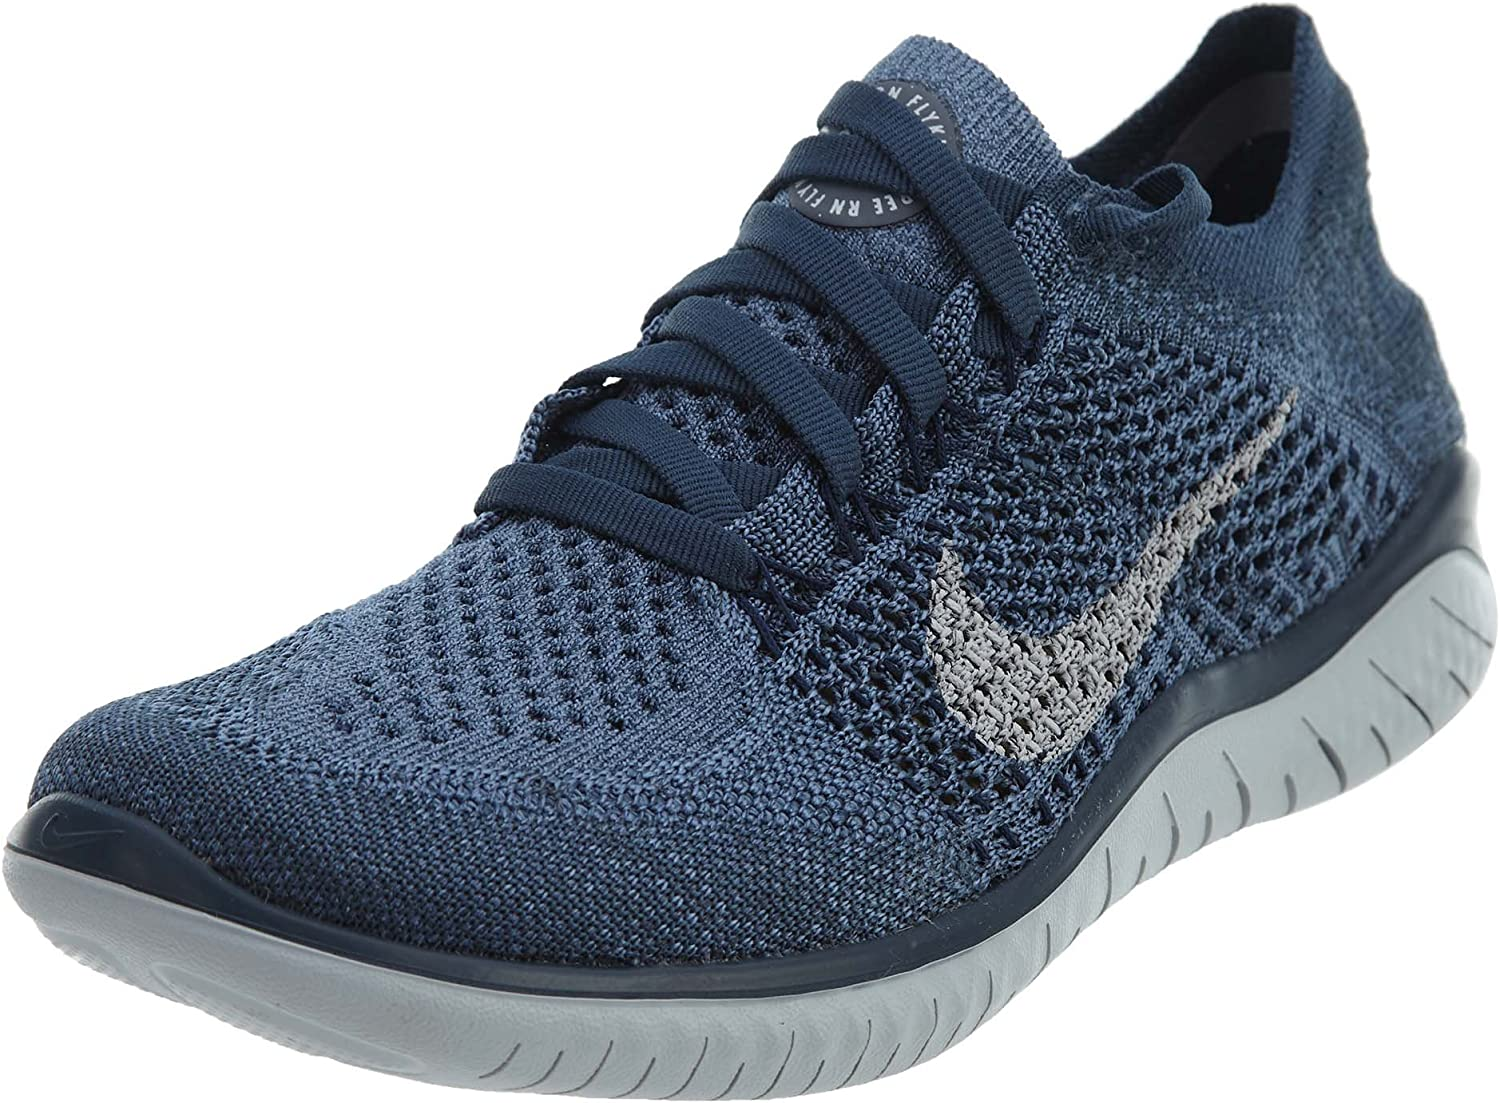 Nike Free Rn Flyknit 2018 Sz 8.5 Womens Running Squadron Blue Pure Platinum-Light Carbon Shoes